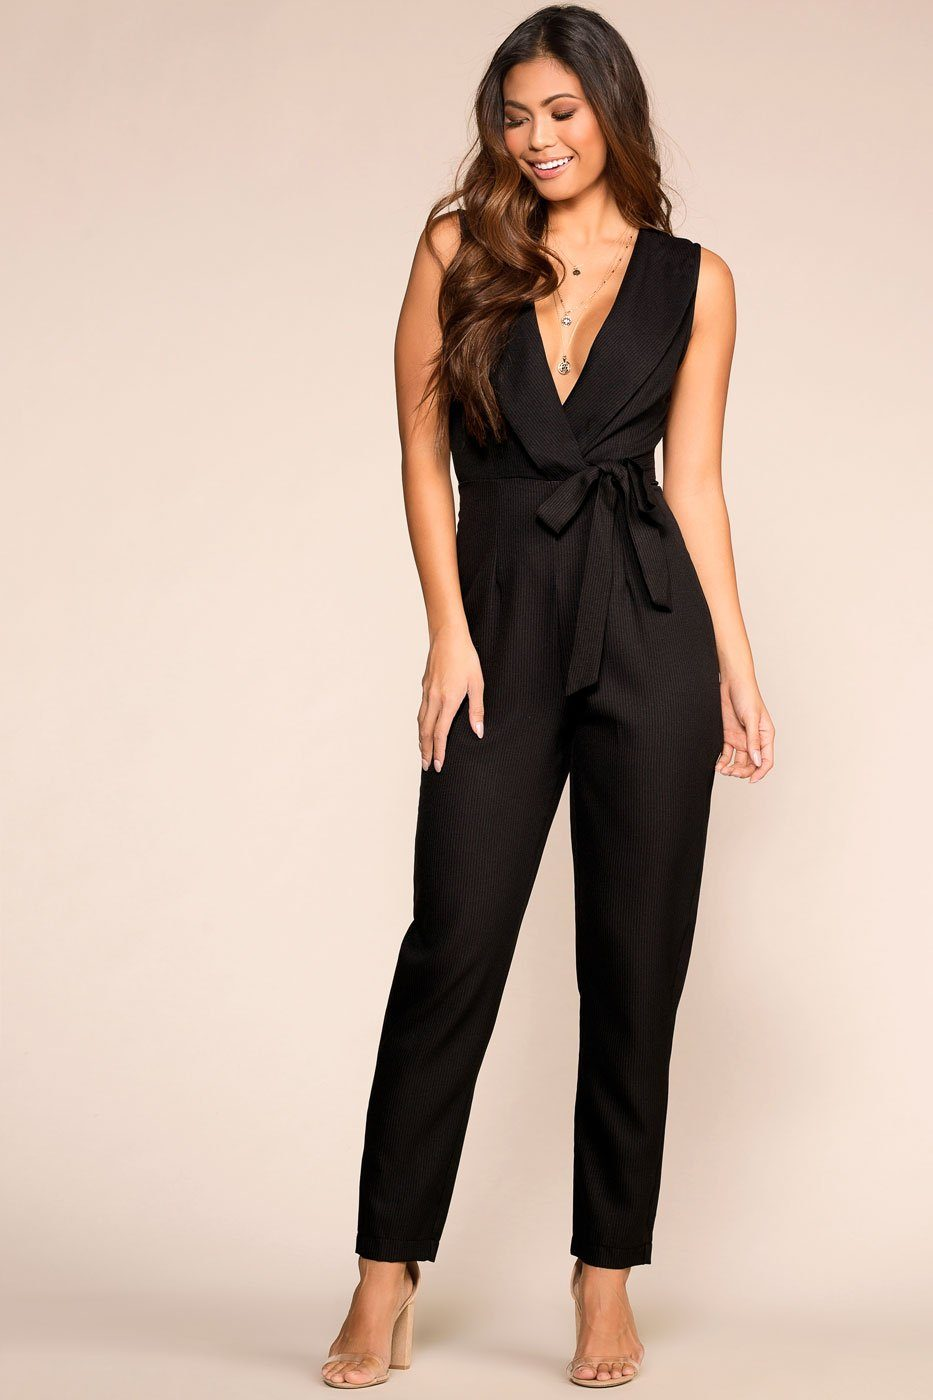 4eca7160a29 ... Make It Work Black Jumpsuit